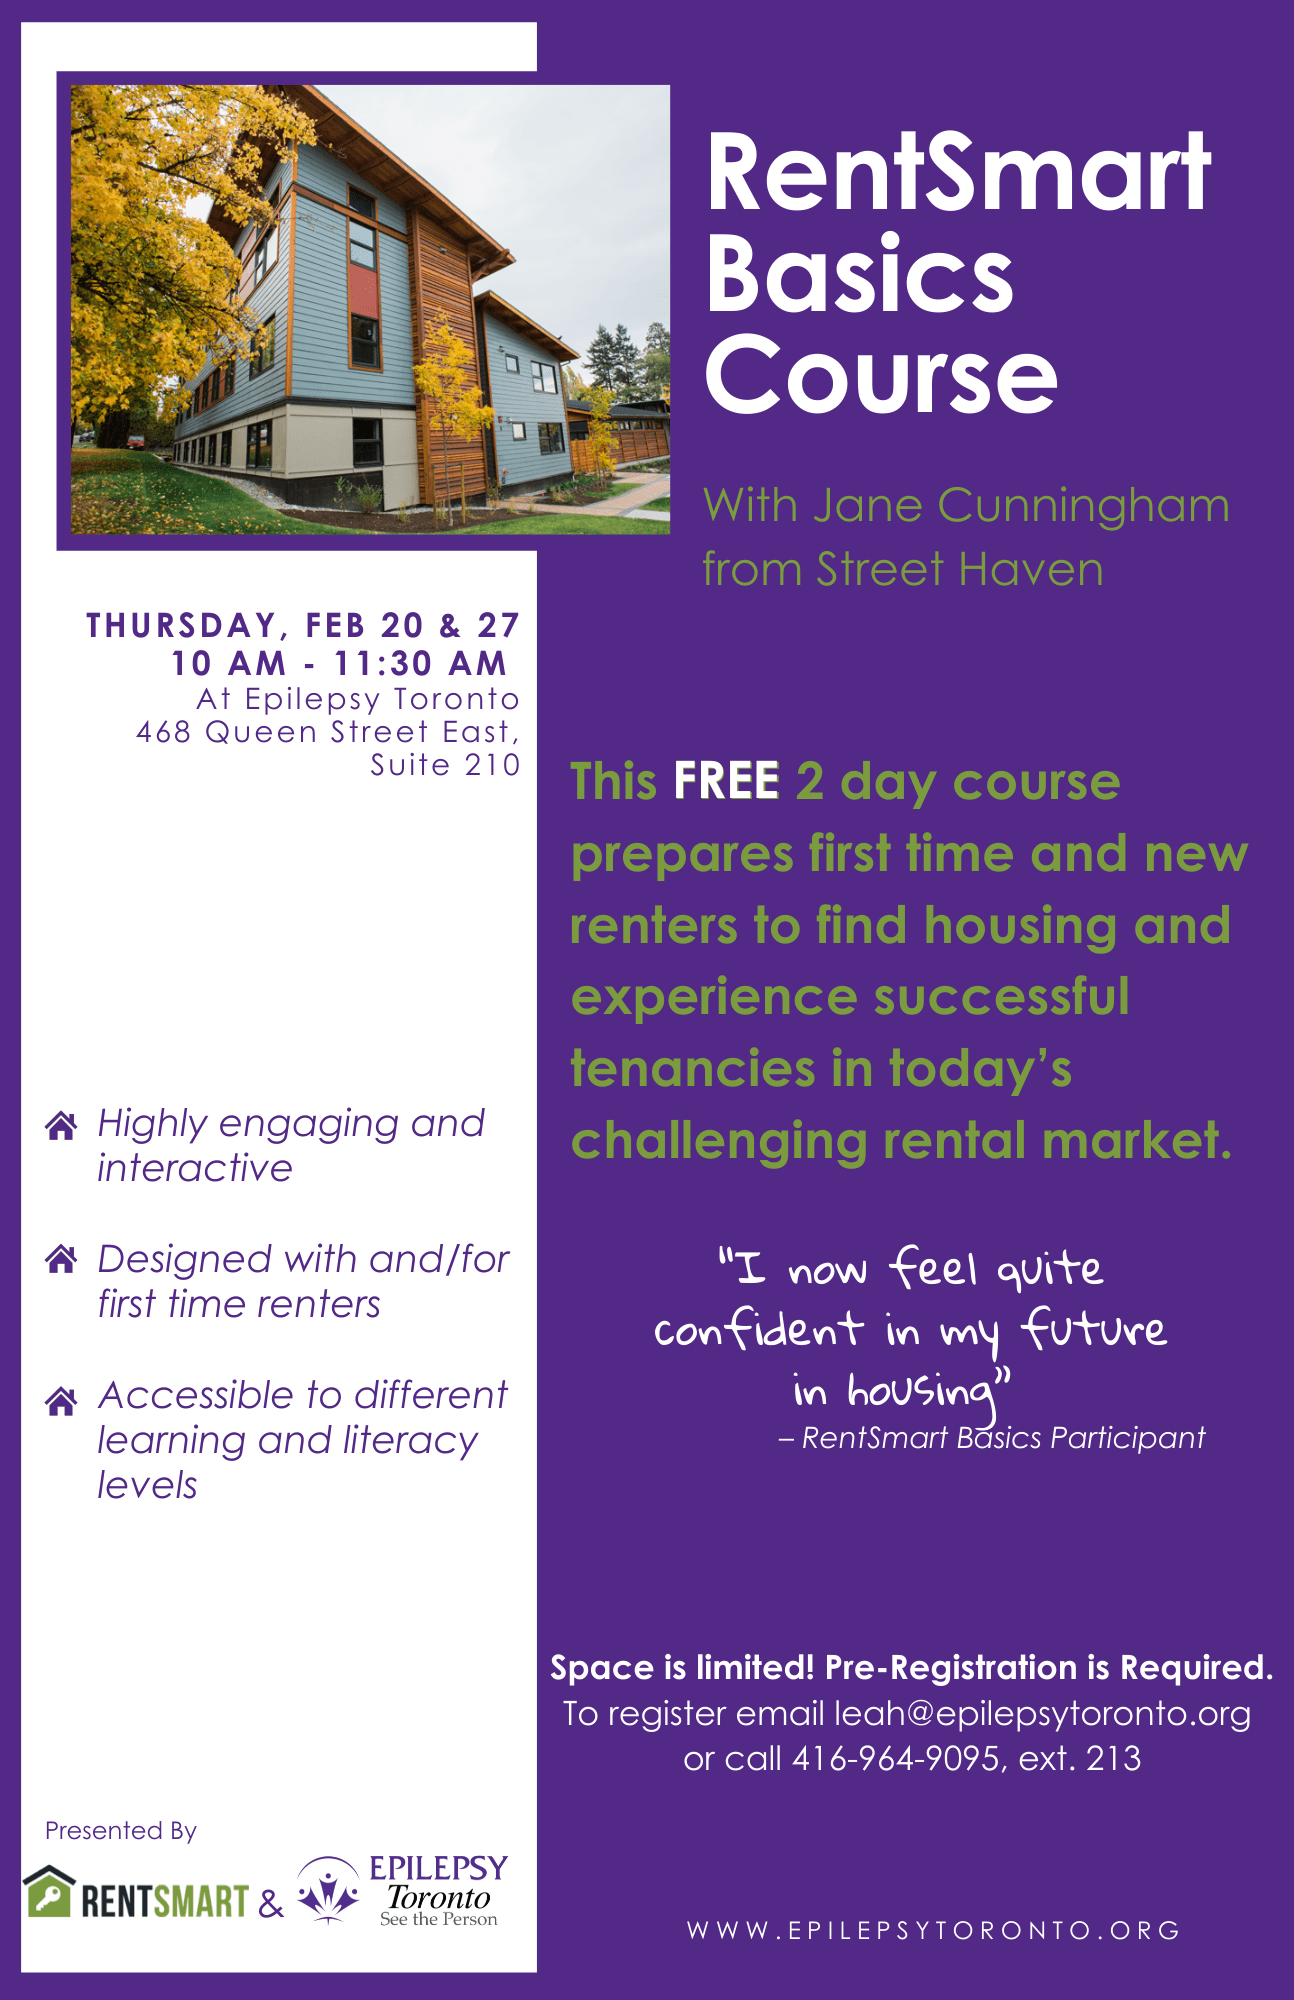 A Free 2 day course for first time renters to help them find housing.